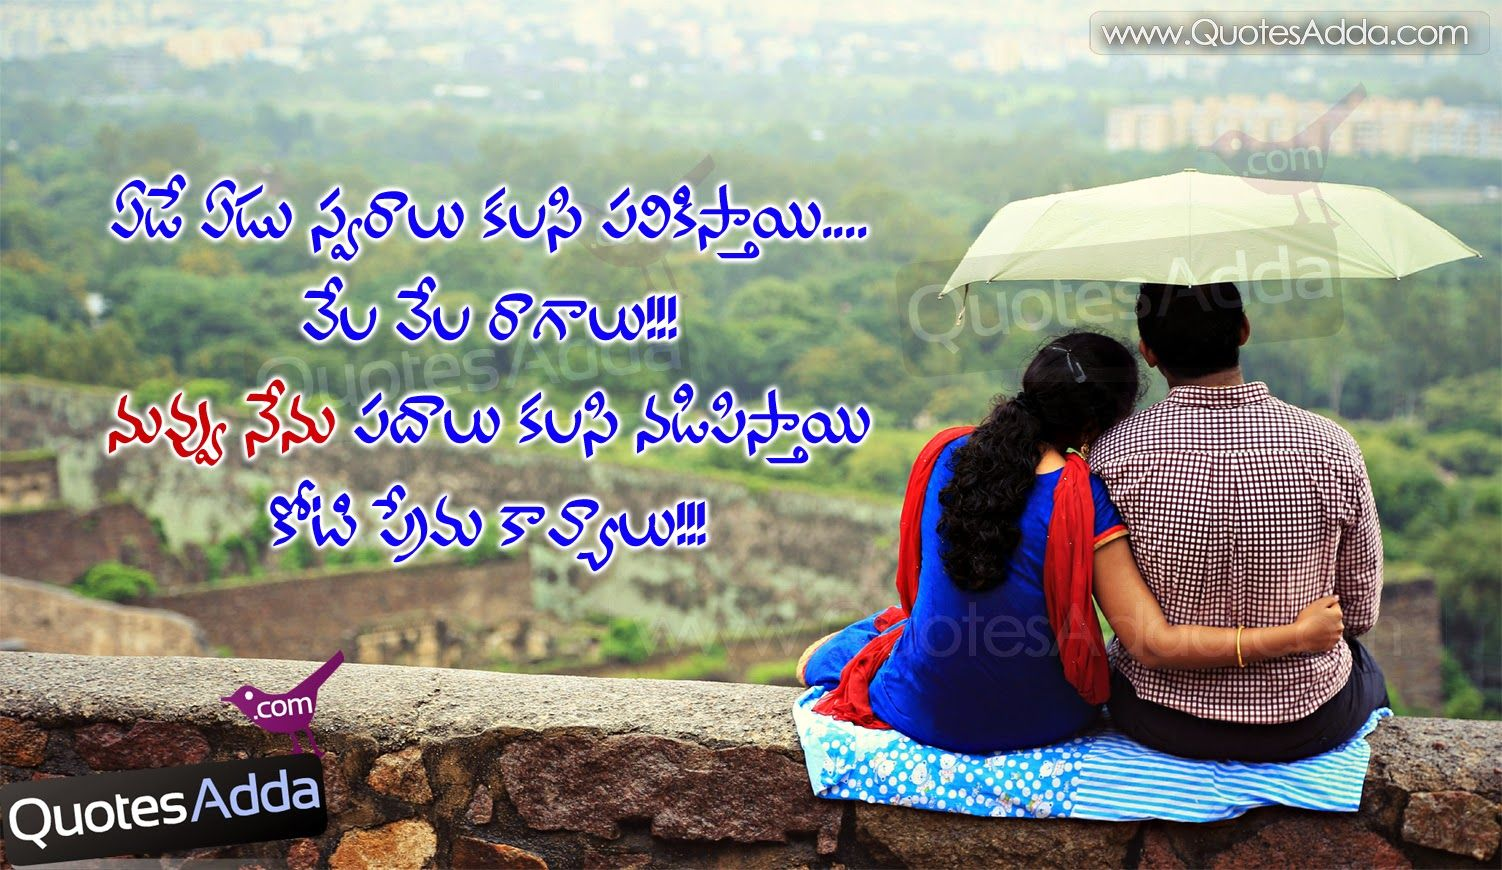 Funny Love Proposal Quotes Best Telugu Beautiful Love Quotations